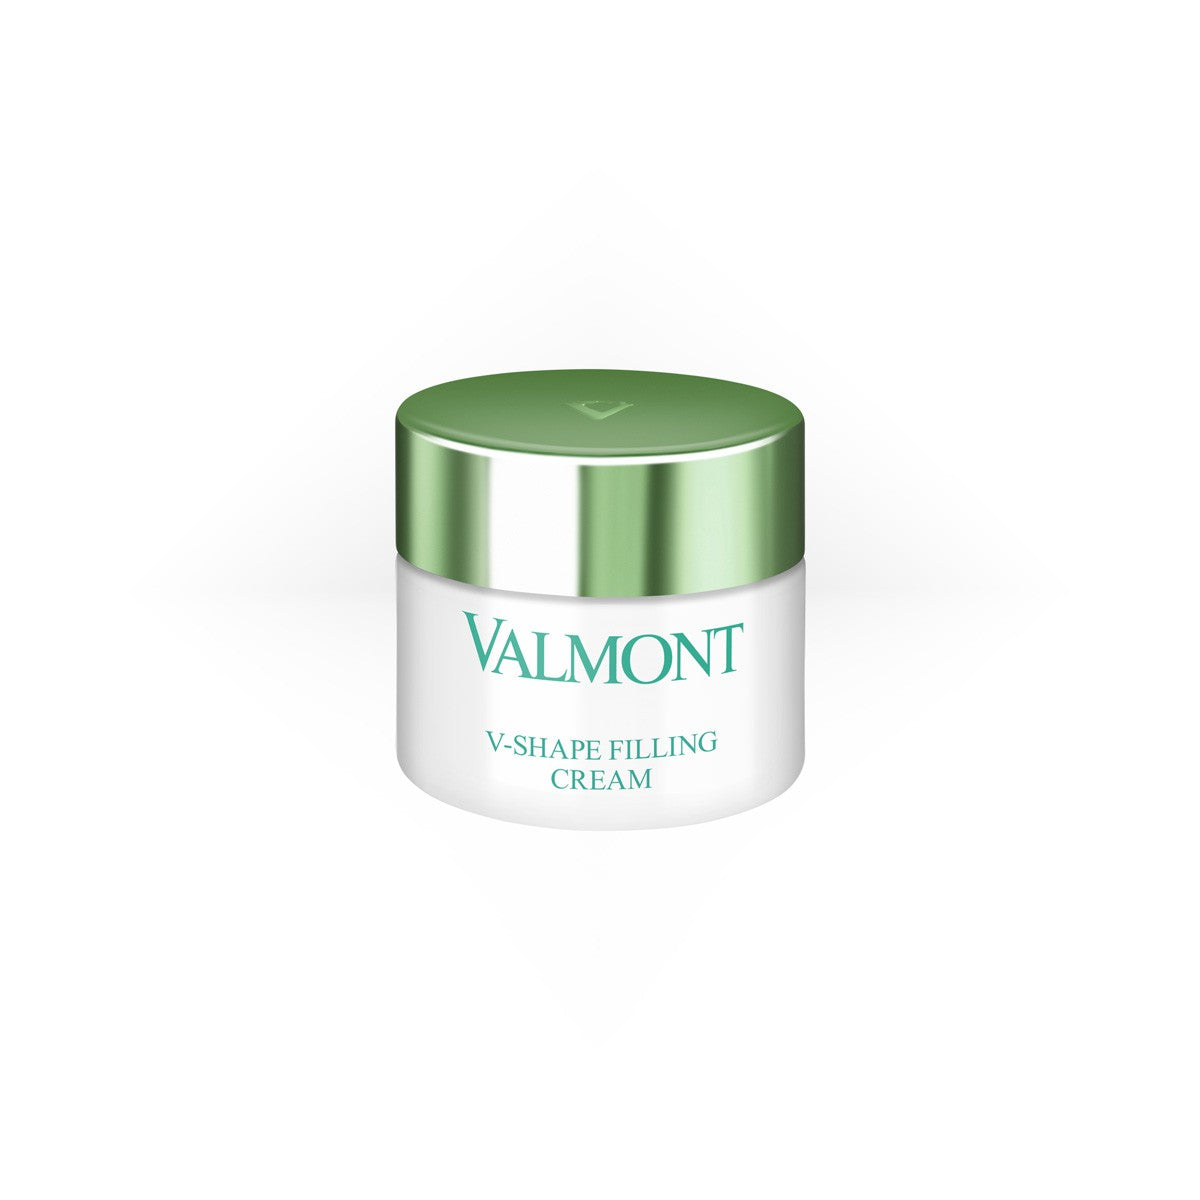 V-SHAPE FILLING CREAM50 ml